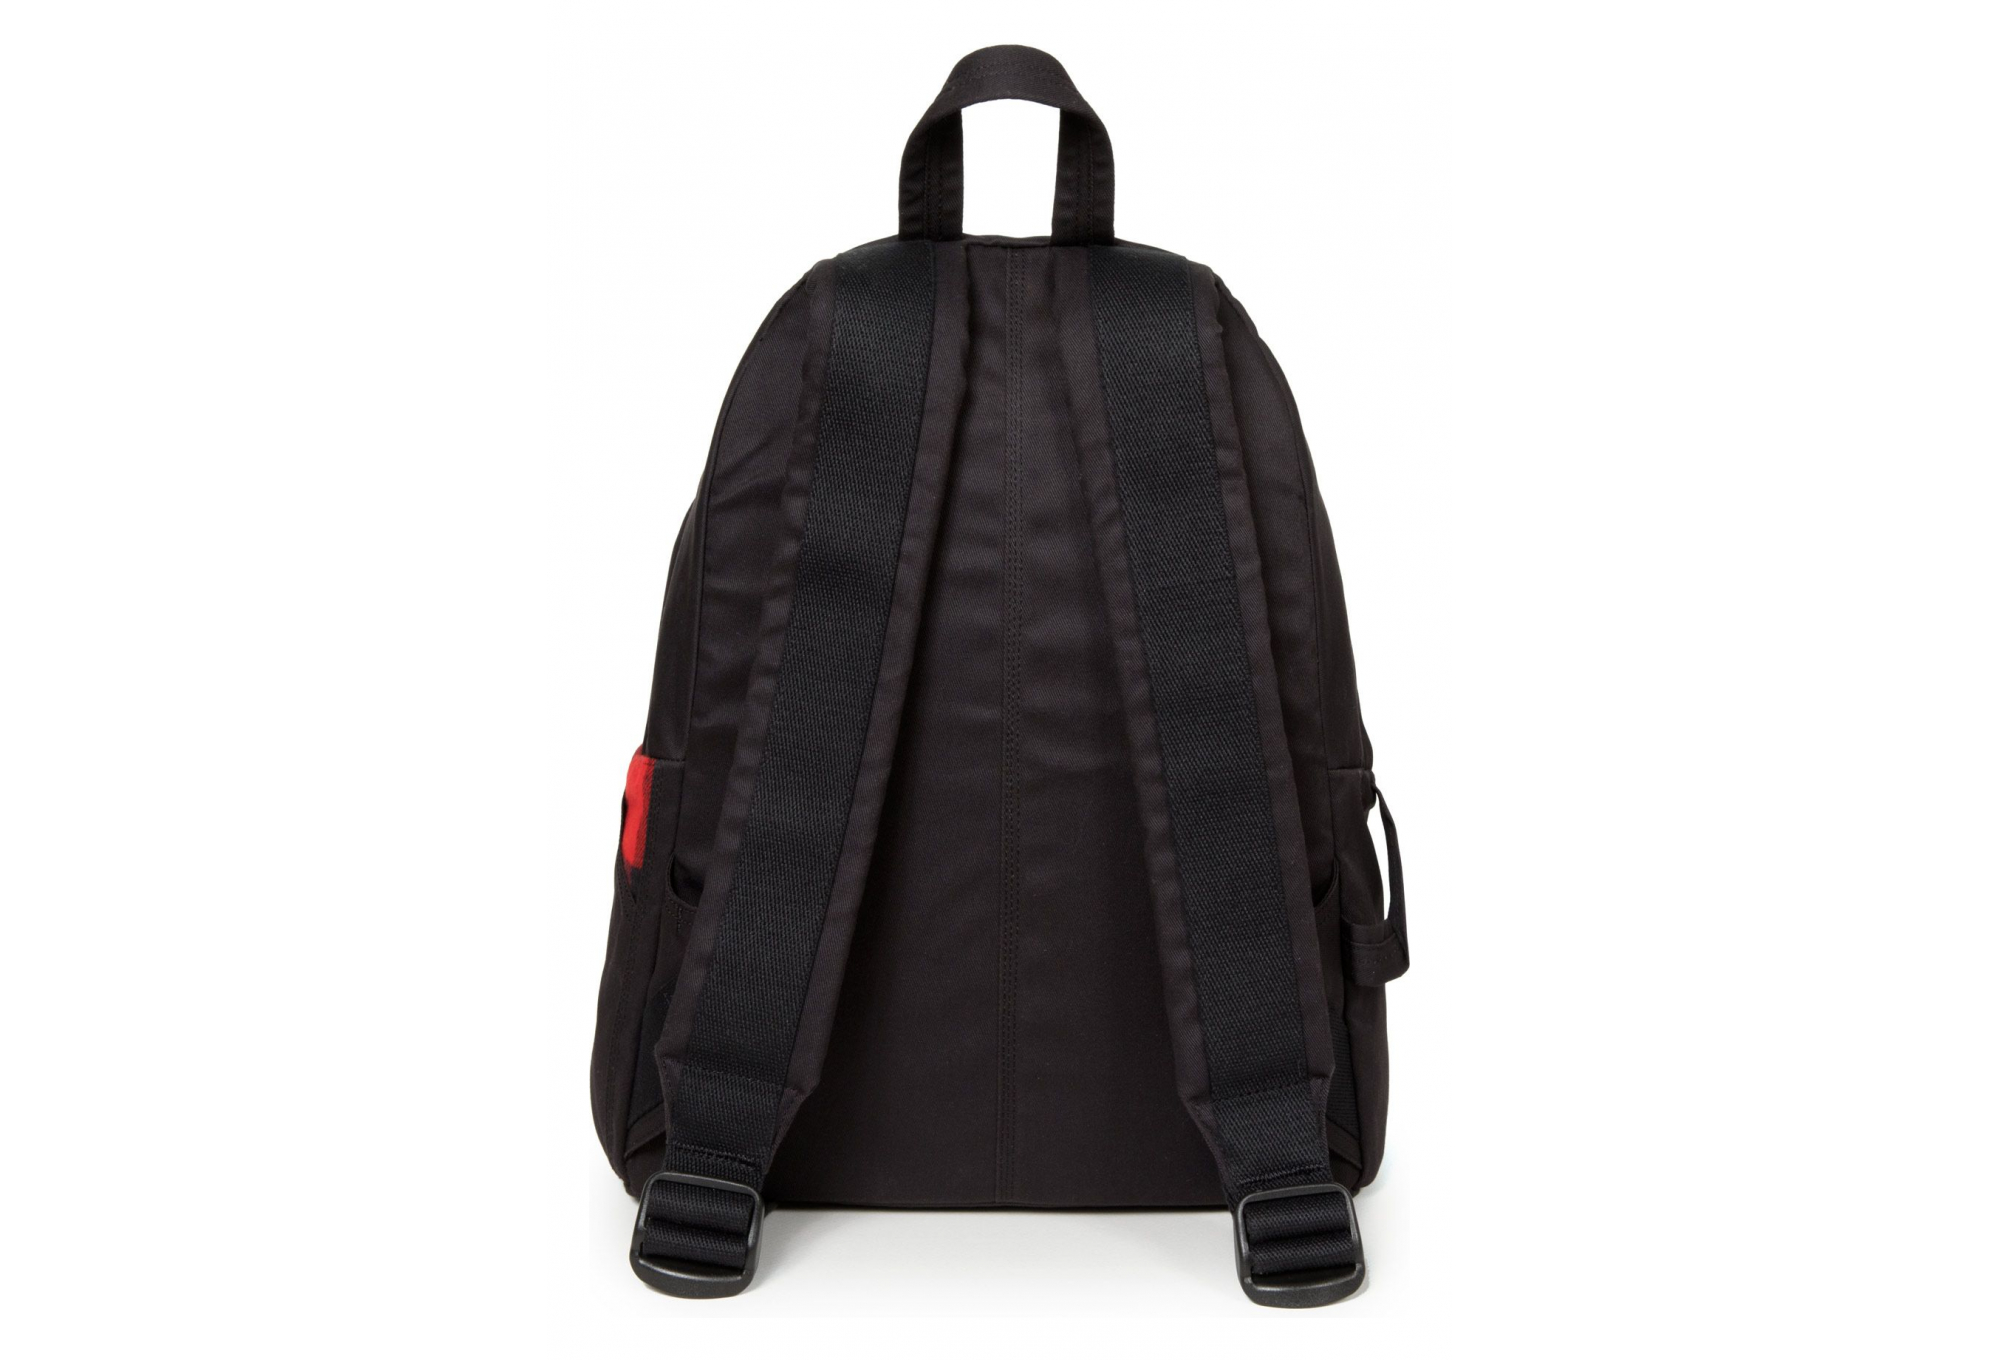 Eastpak x Dickies Padded Pak'r sac à dos: : Bagages